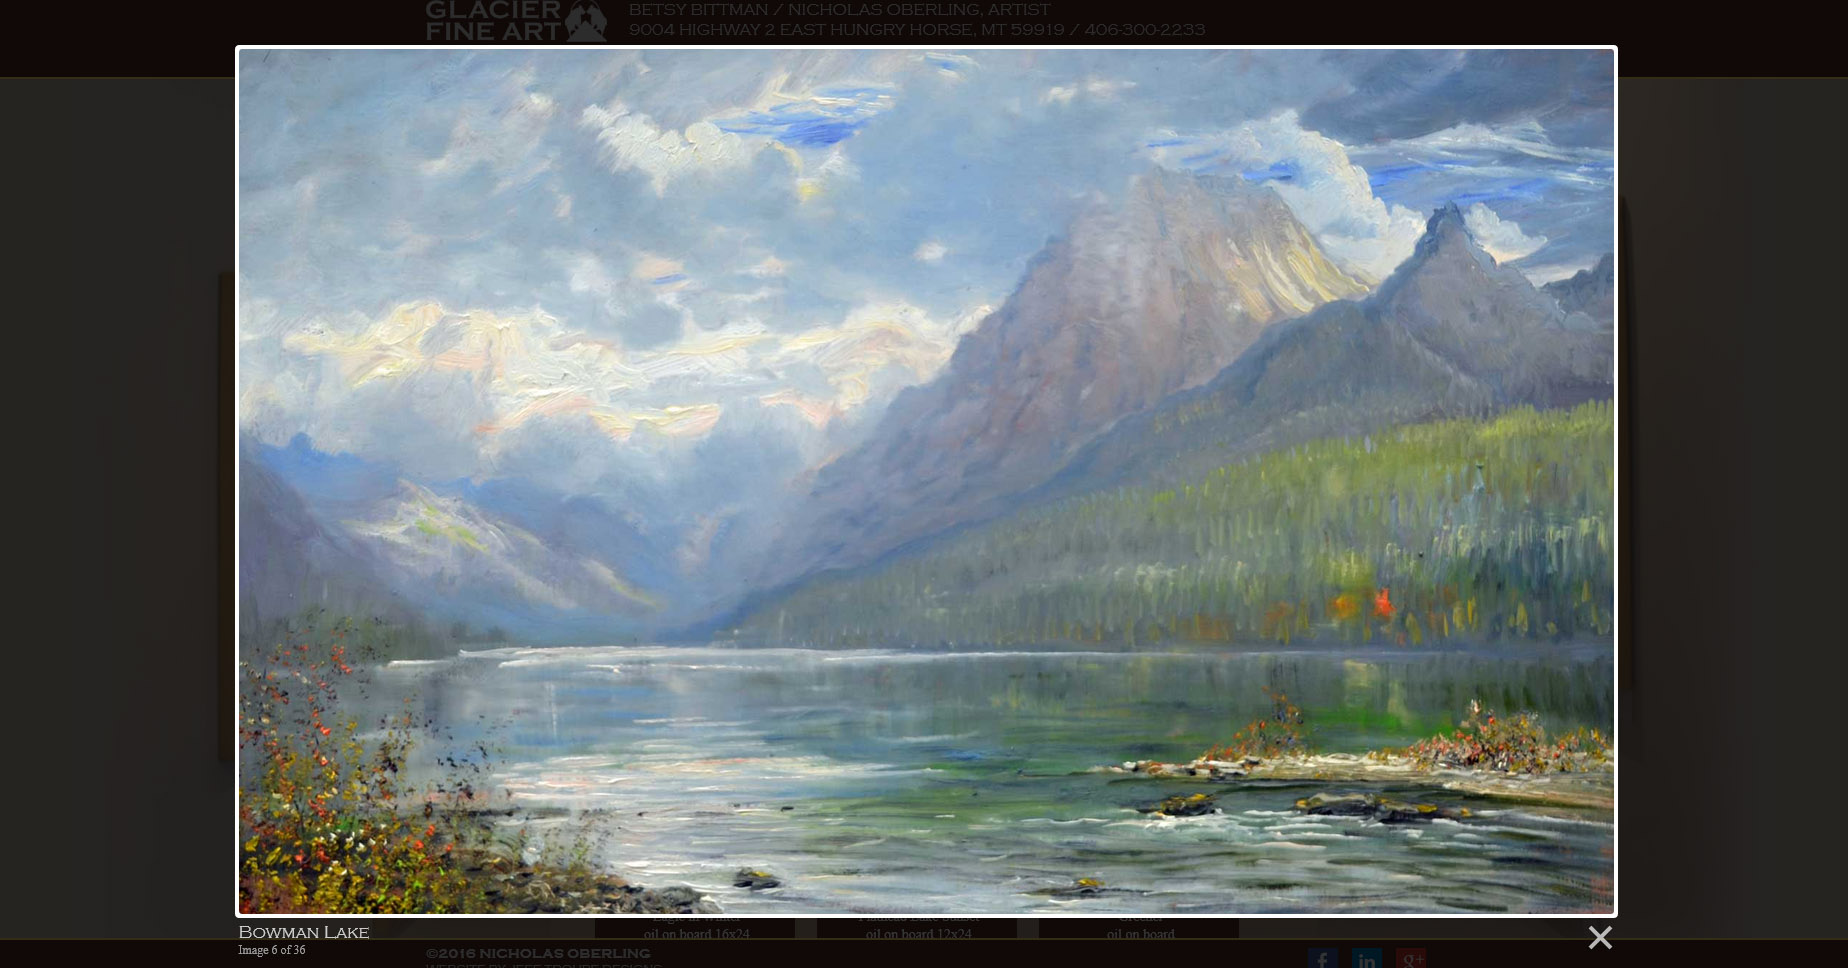 website design image painting of mountains and lake